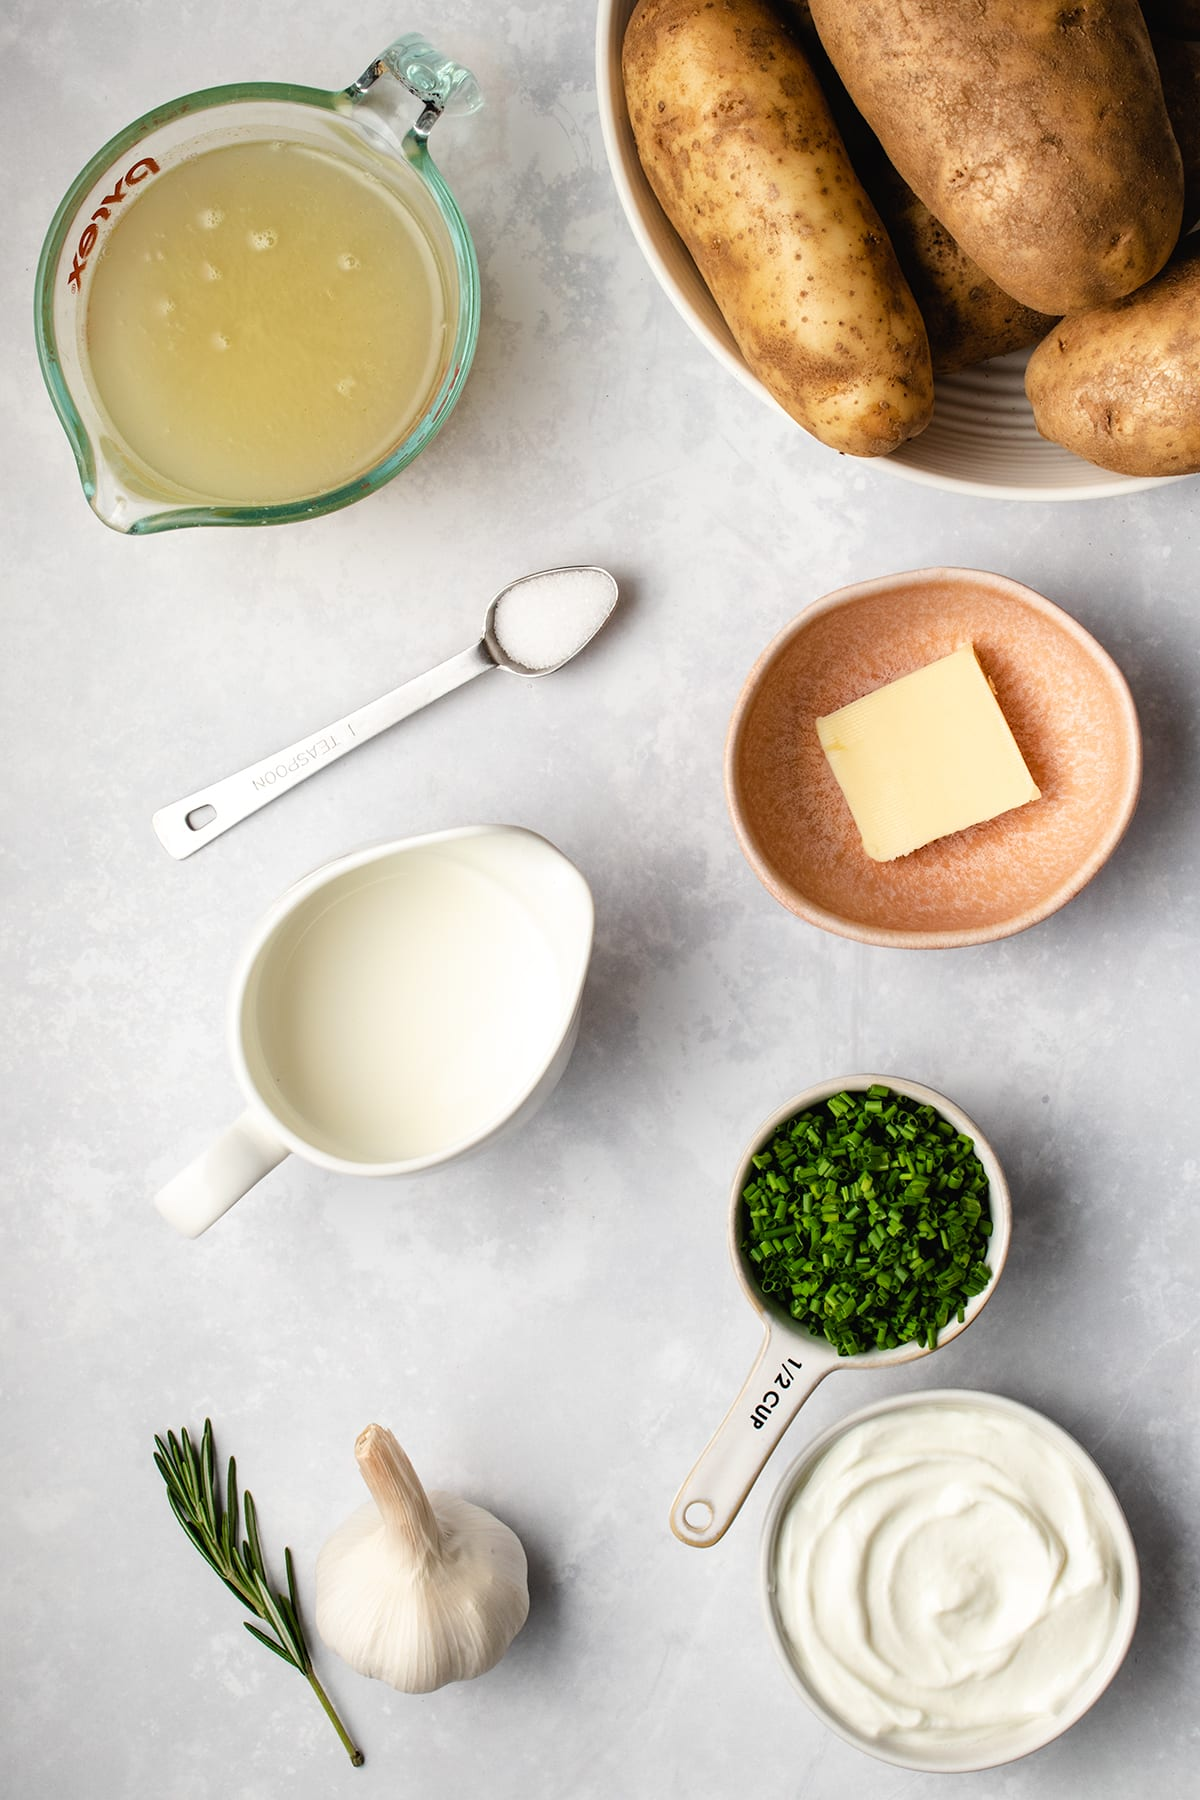 Ingredients needed to make Instant Pot No-Drain Mashed Potatoes viewed from overhead.